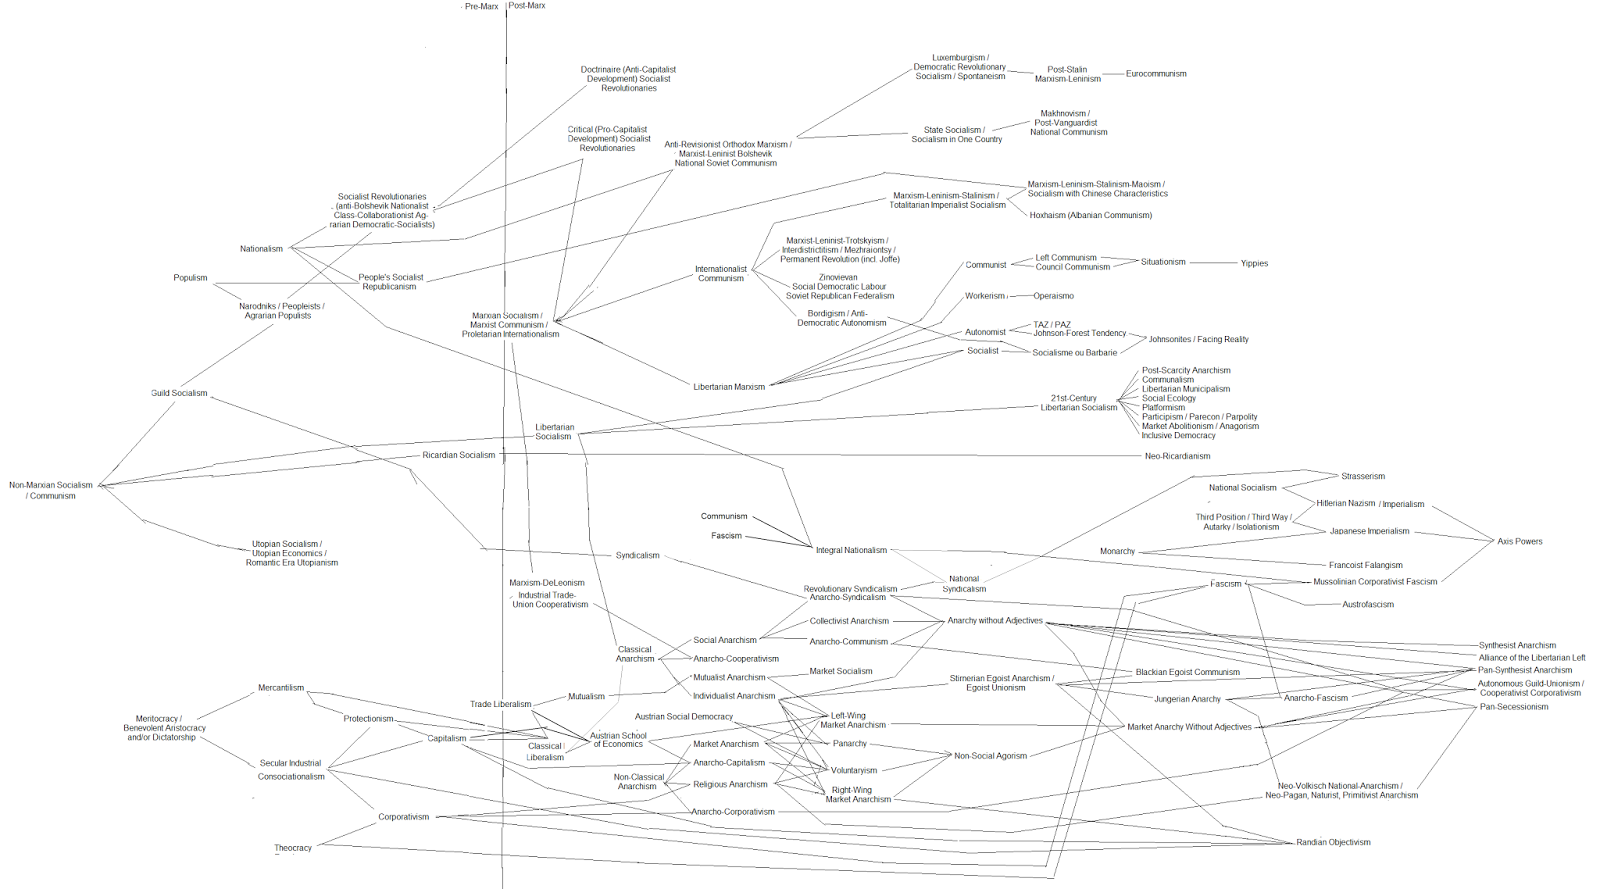 The Aquarian Agrarian: Political Theory Flow Chart